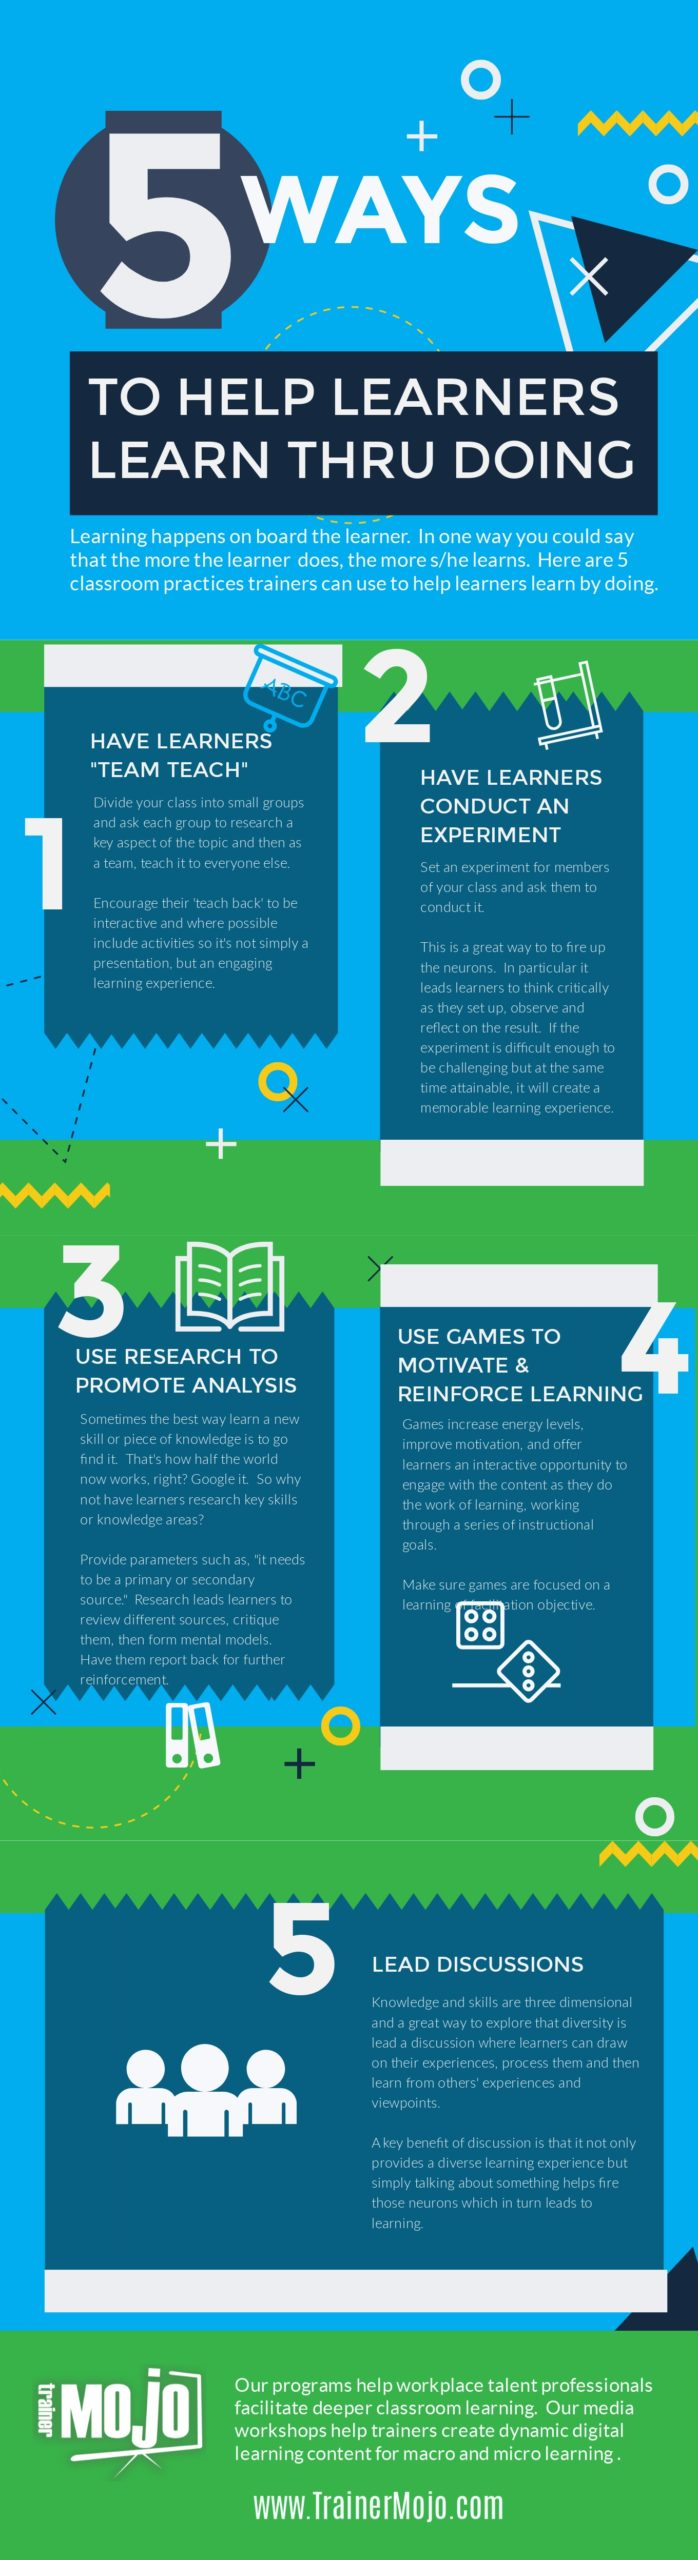 Learning through doing is a powerful way to support workplace learning